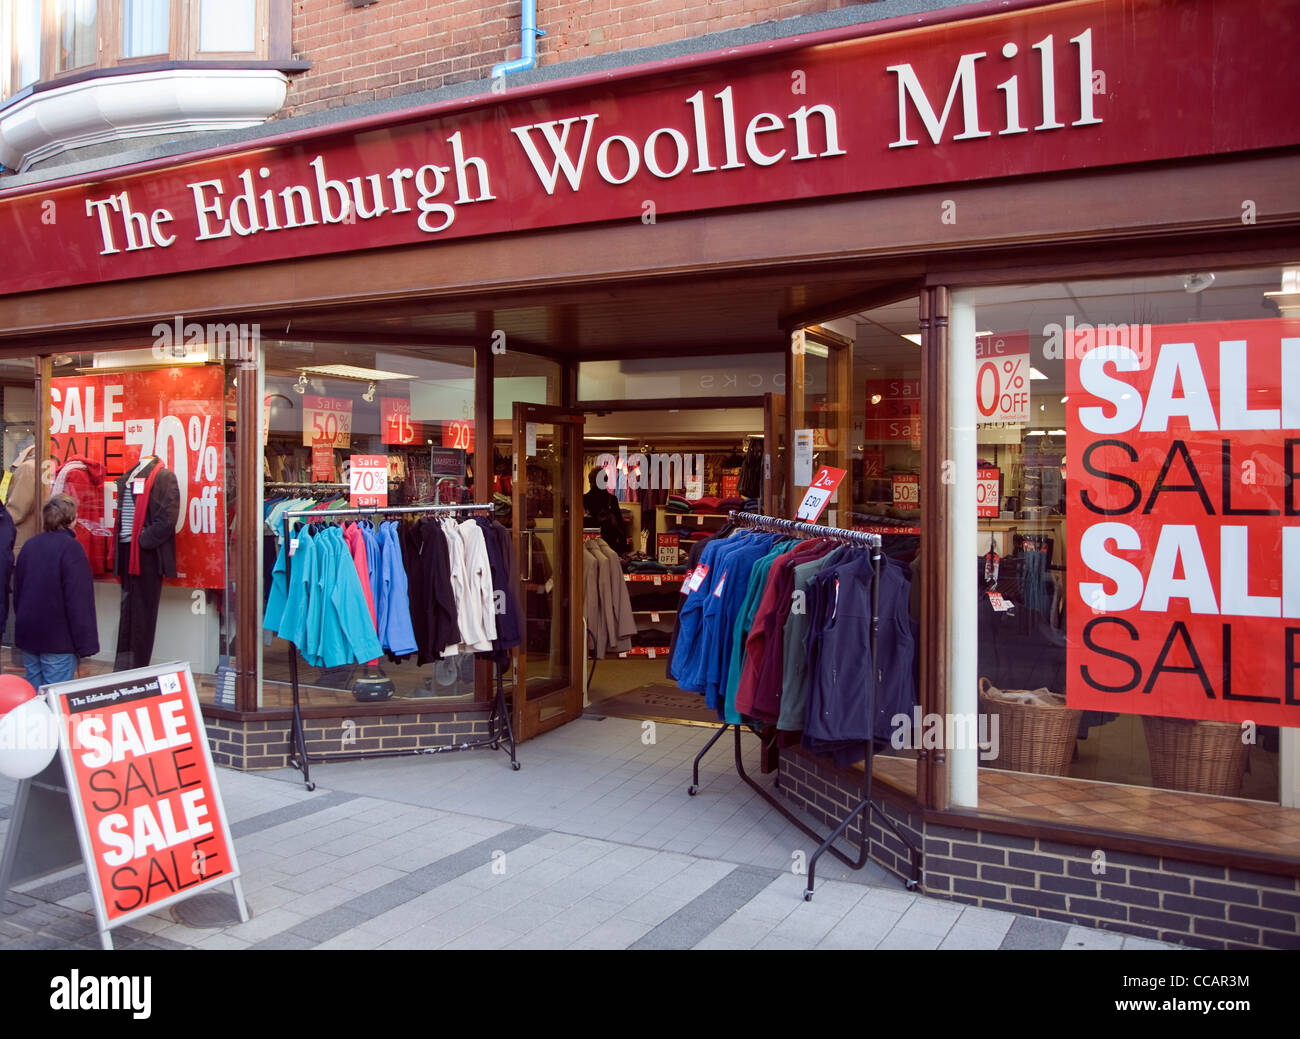 Woolen Mill High Resolution Stock Photography And Images Alamy